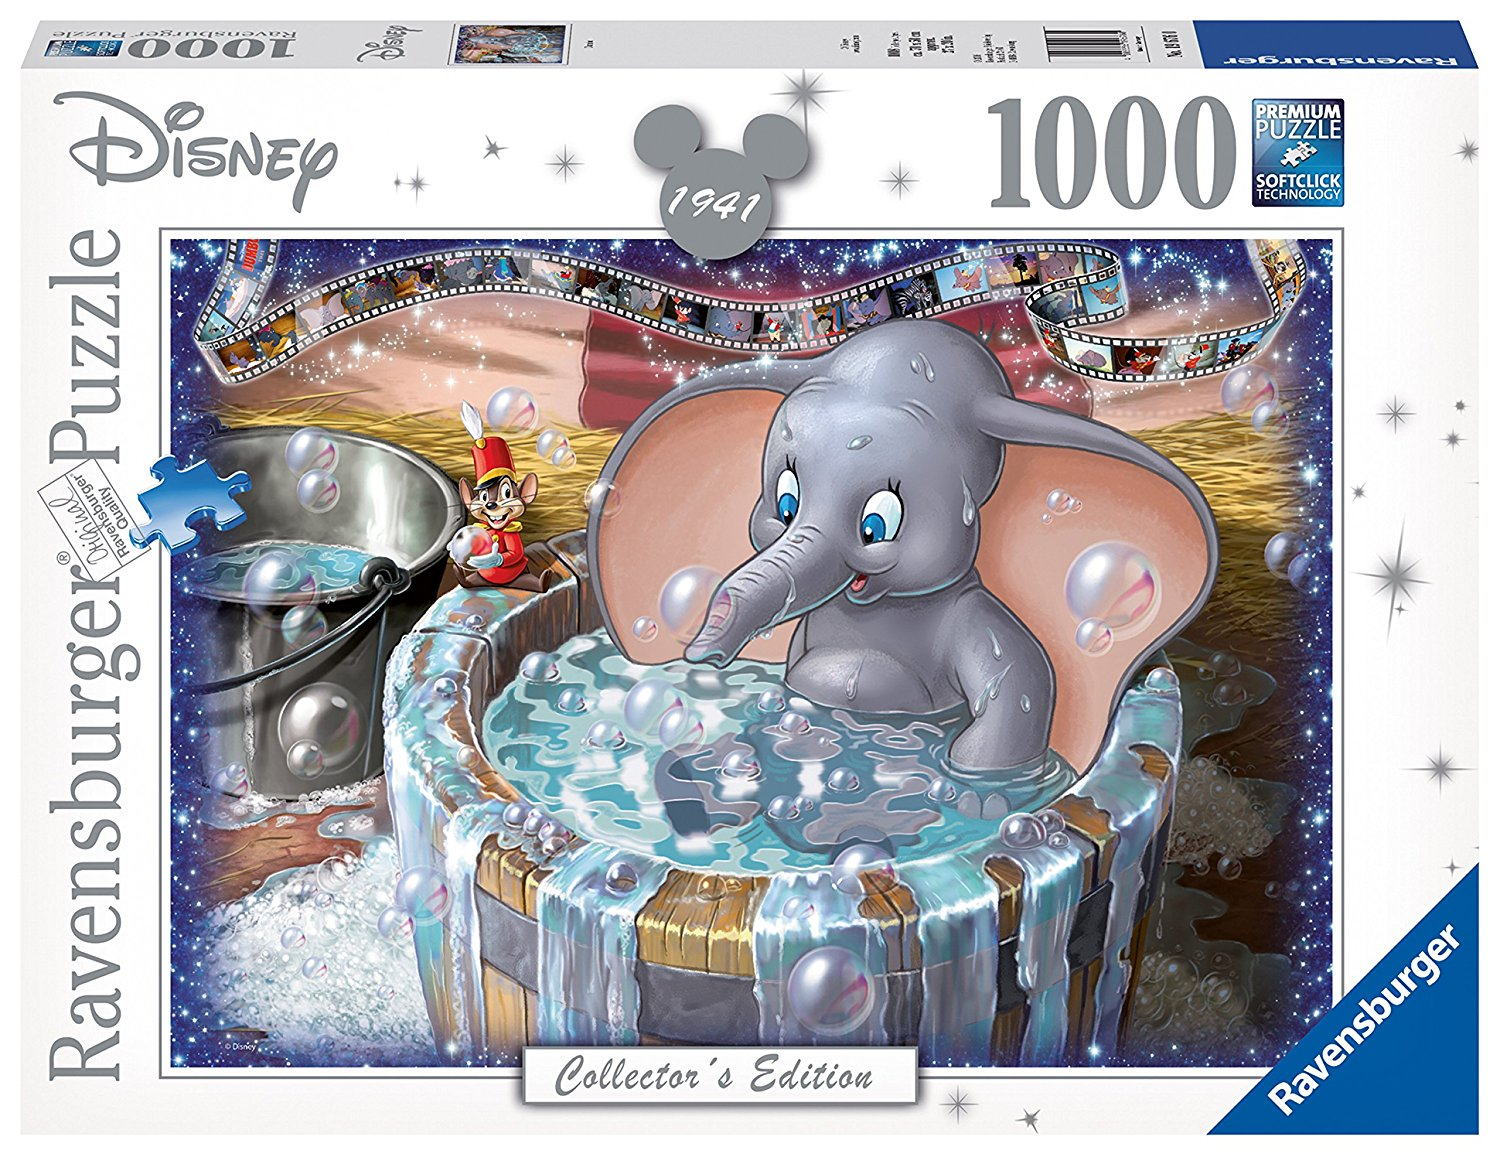 Dumbo Disney Collector's Edition, 1000pc